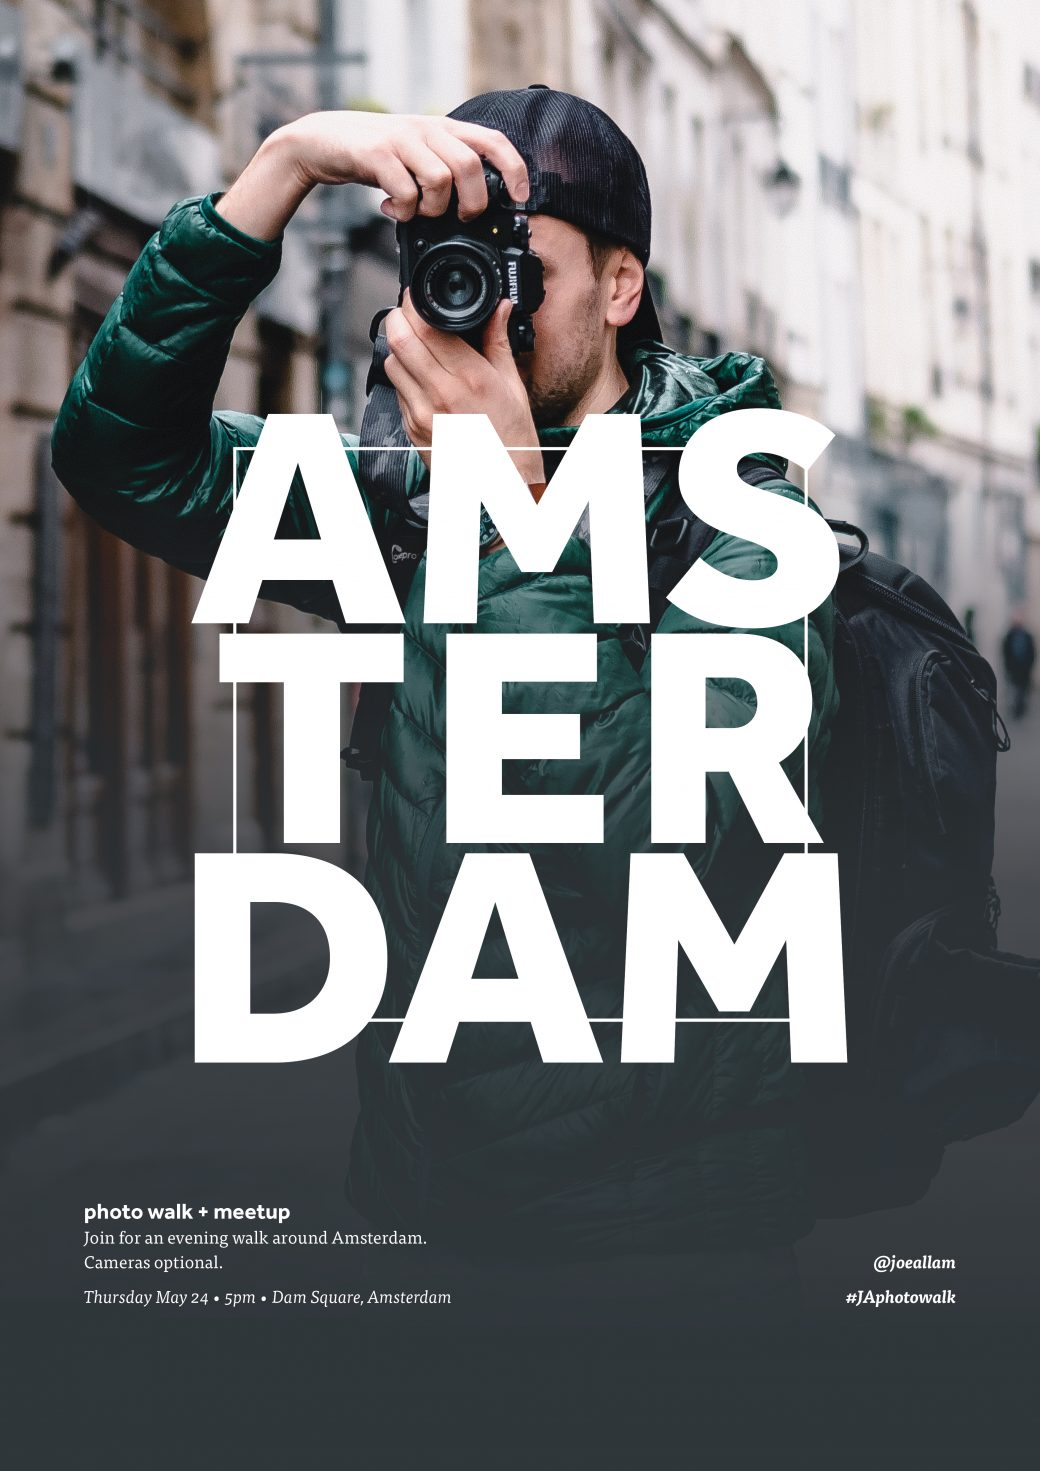 Amsterdam photo walk and meet-up poster